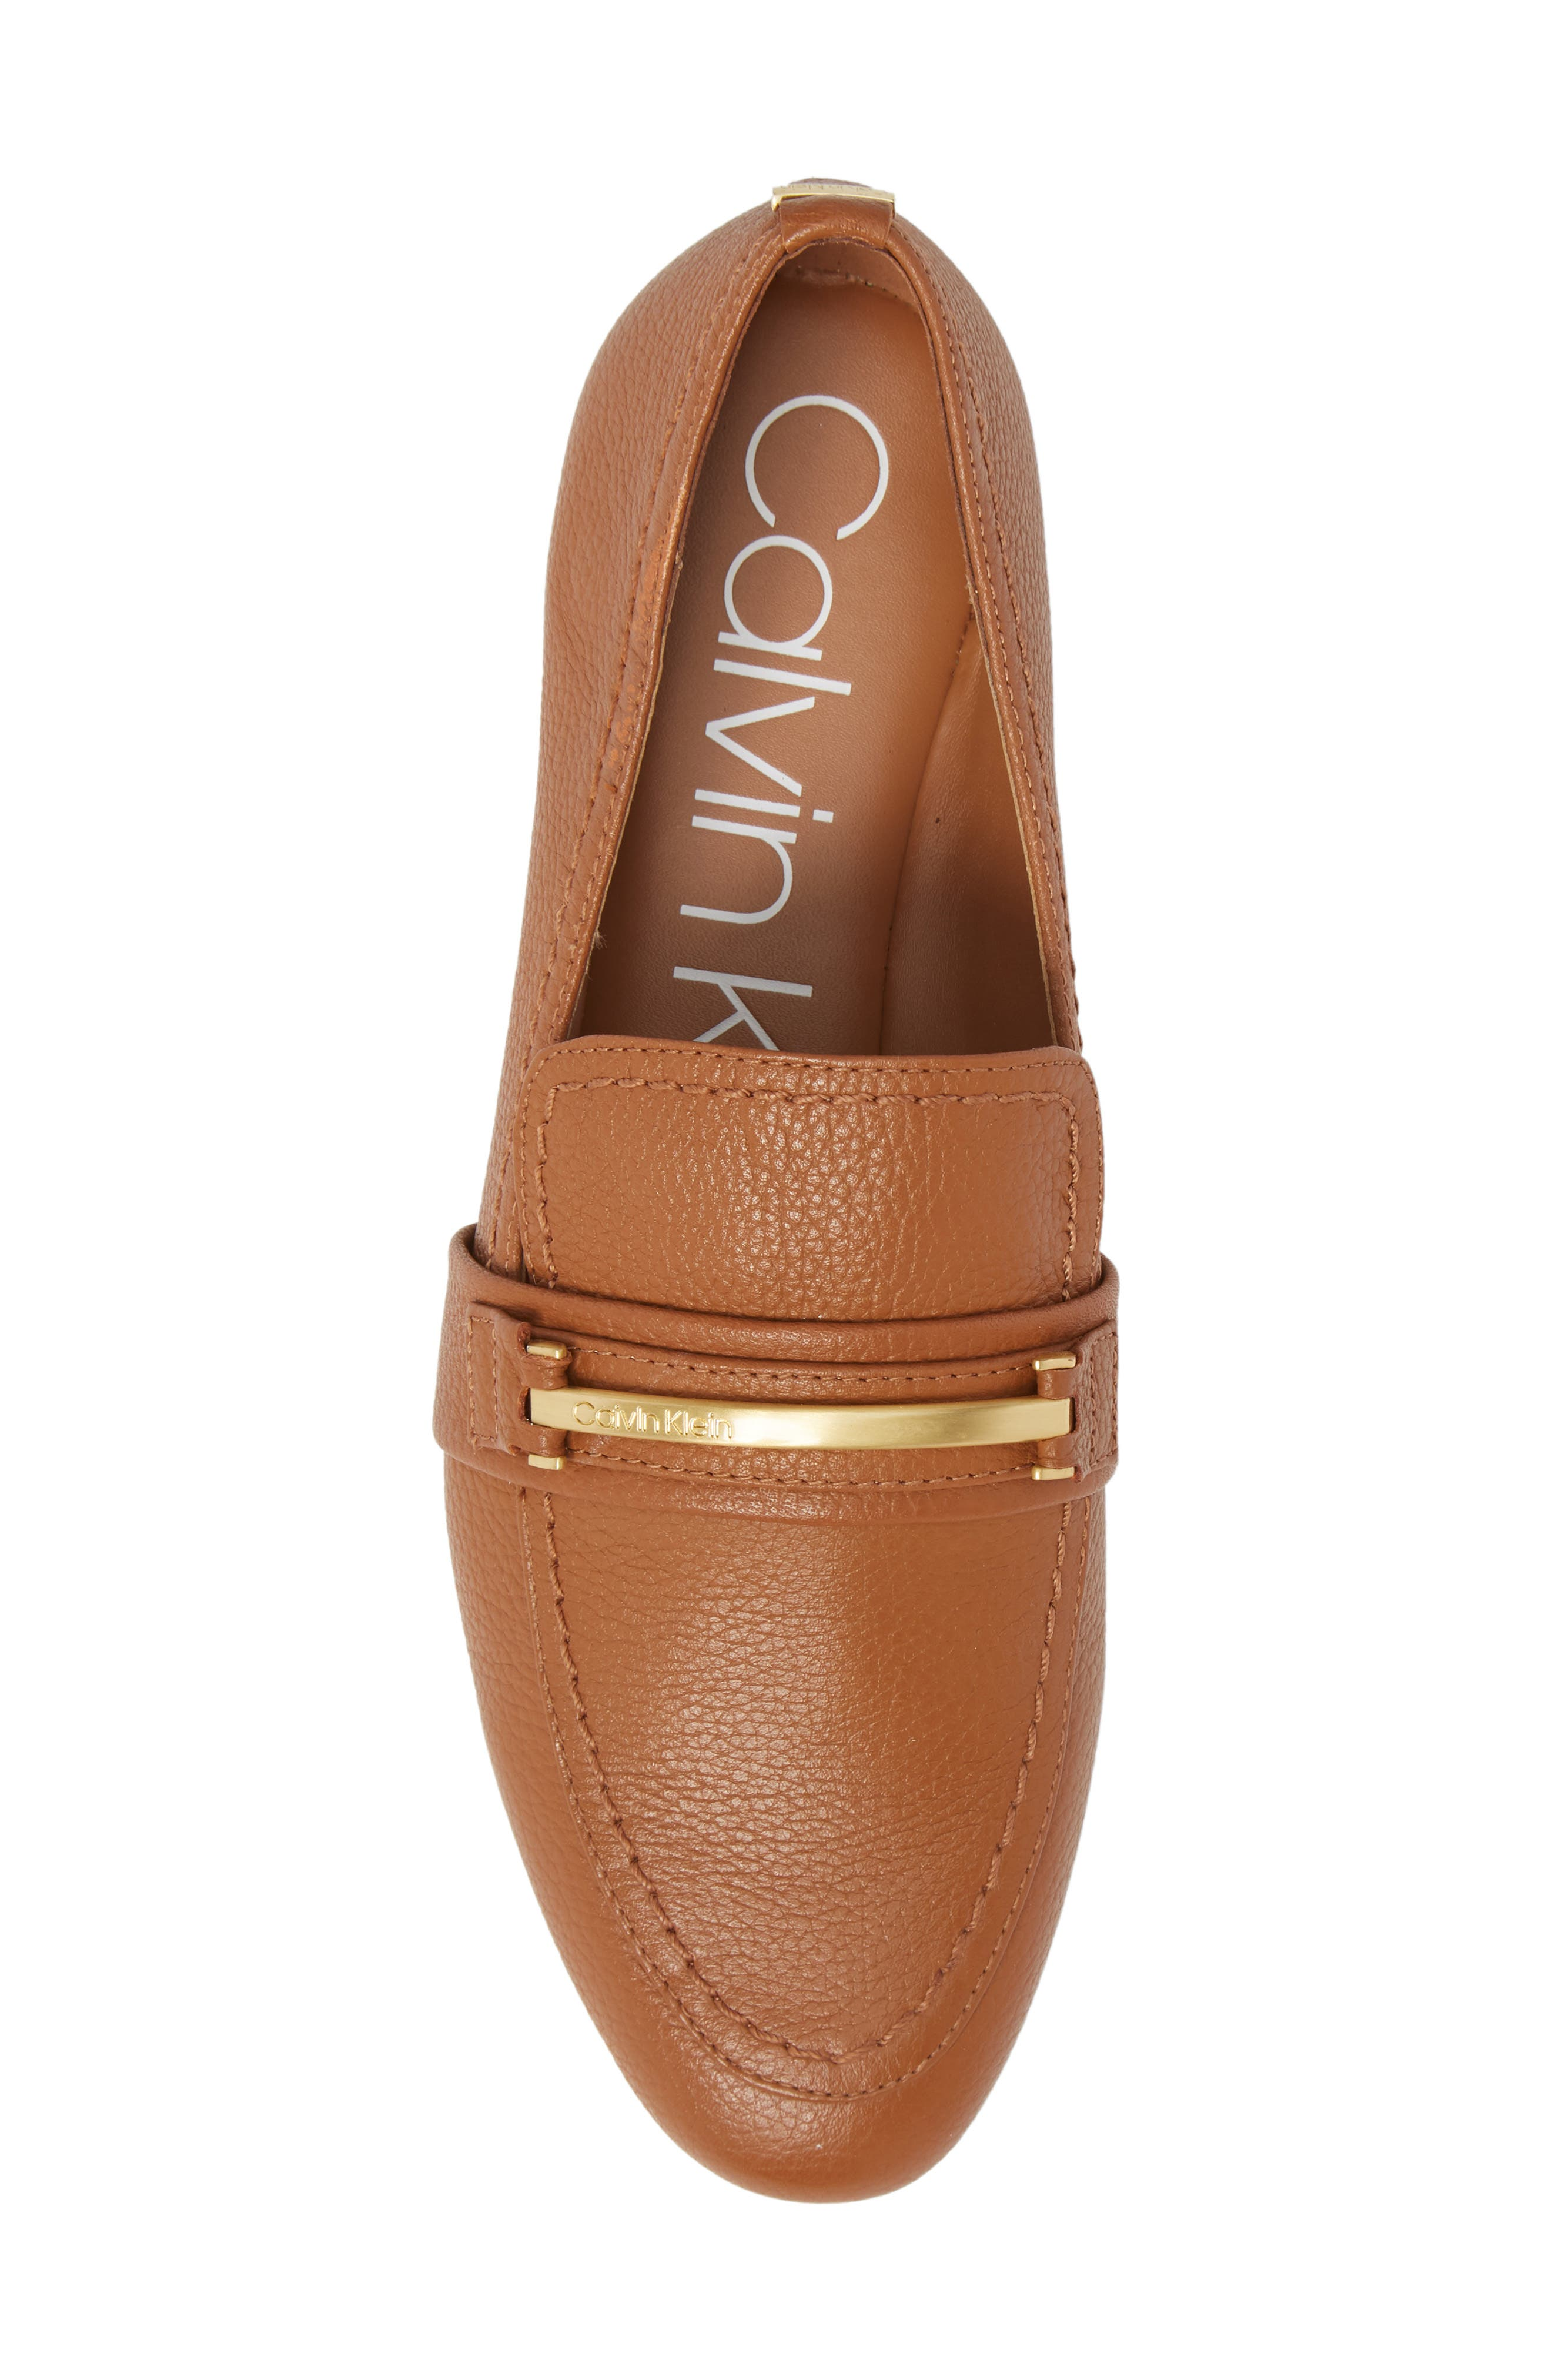 Orianna Loafer,                             Alternate thumbnail 5, color,                             COGNAC LEATHER